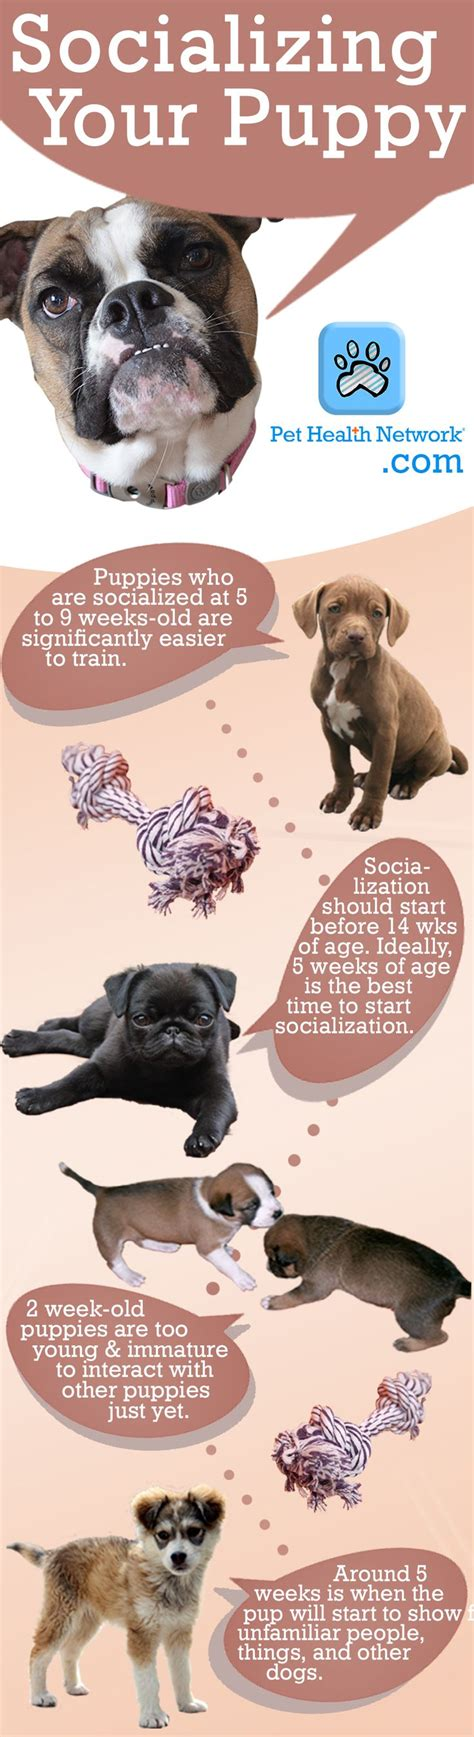 socializing a puppy when getting a new puppy take this into consideration when socializing your pup in